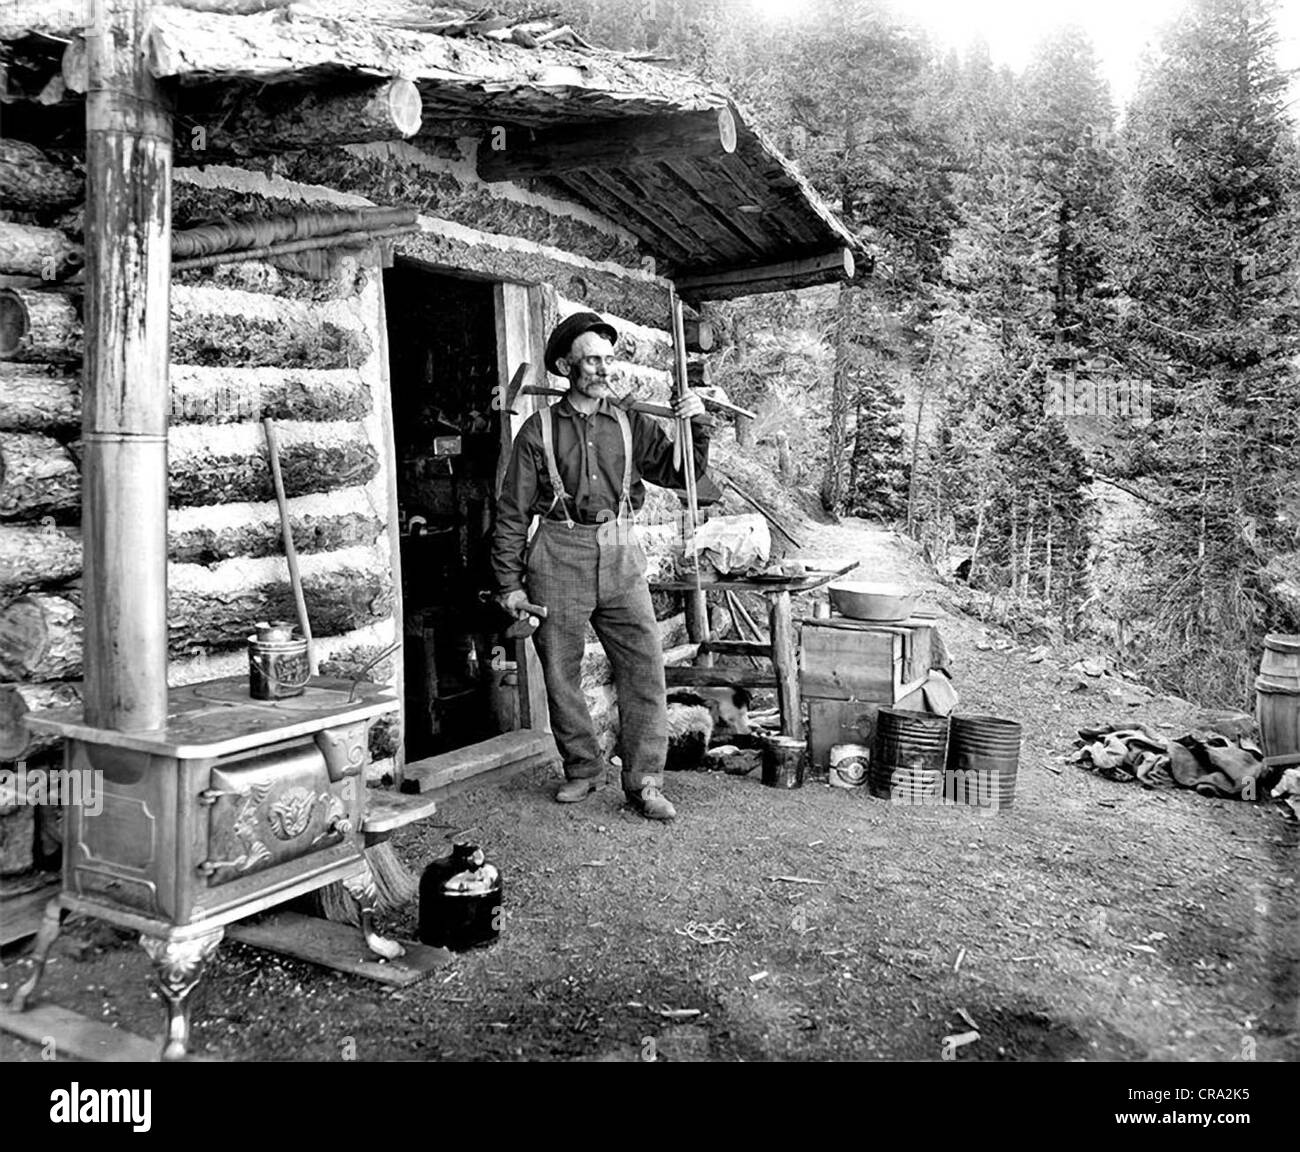 Older Working Man in front of Log Cabin - Stock Image